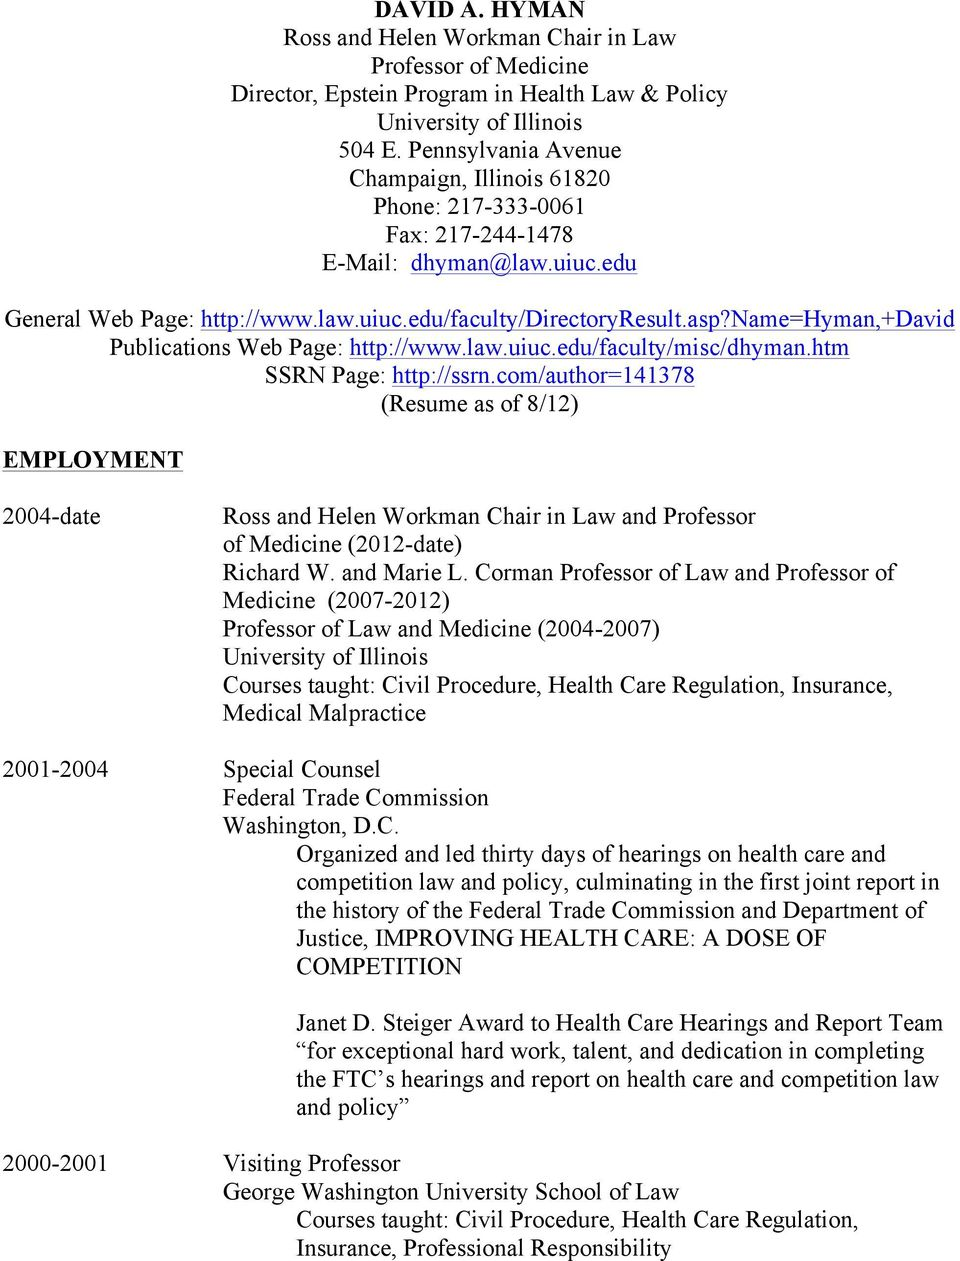 name=hyman,+david Publications Web Page: http://www.law.uiuc.edu/faculty/misc/dhyman.htm SSRN Page: http://ssrn.